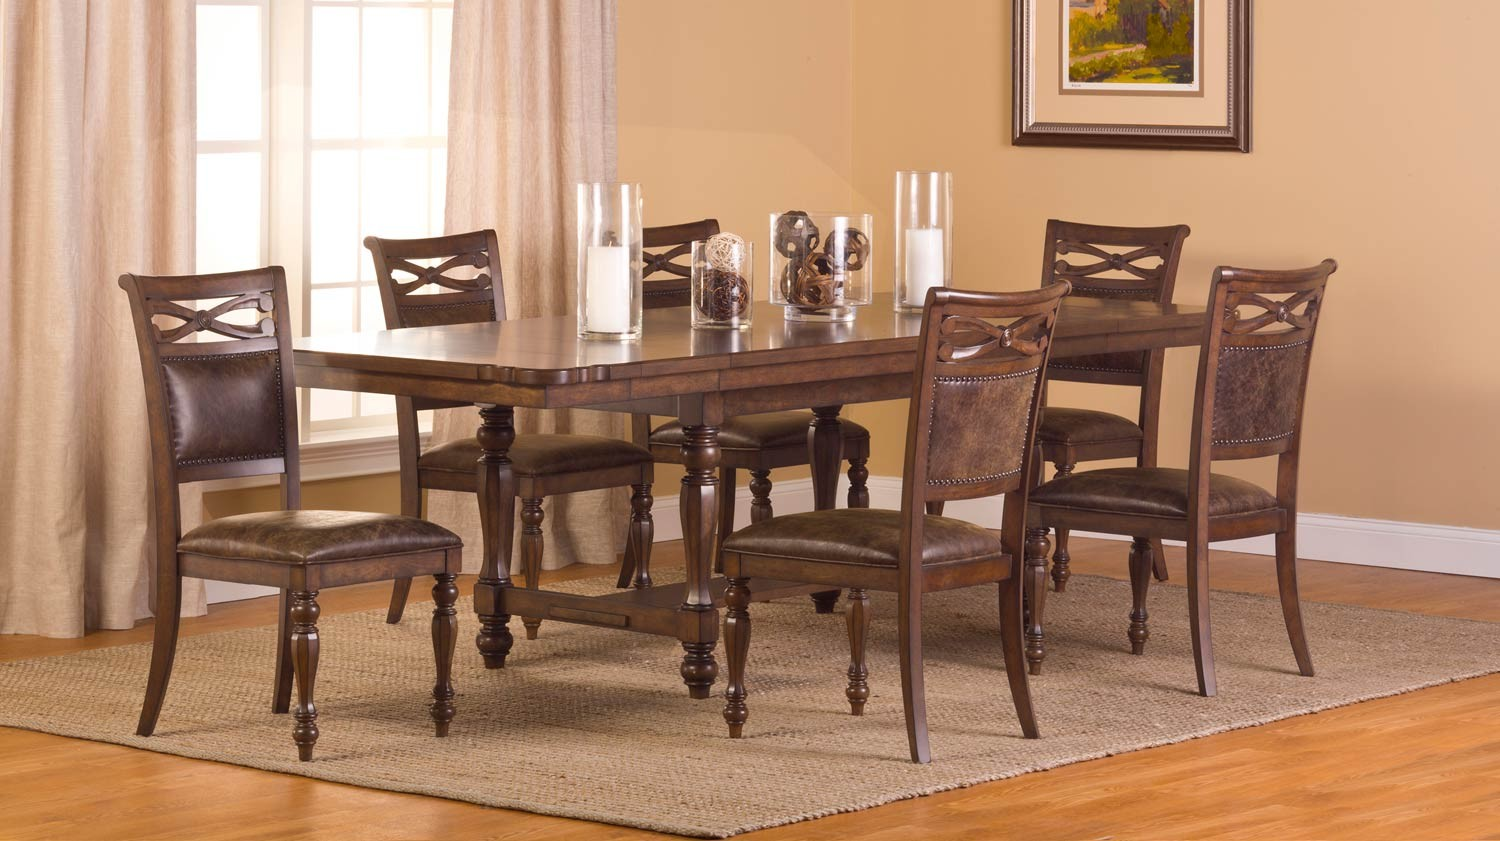 Perfect Hillsdale Seaton Springs 7 Pc Dining Set   Weathered Walnut